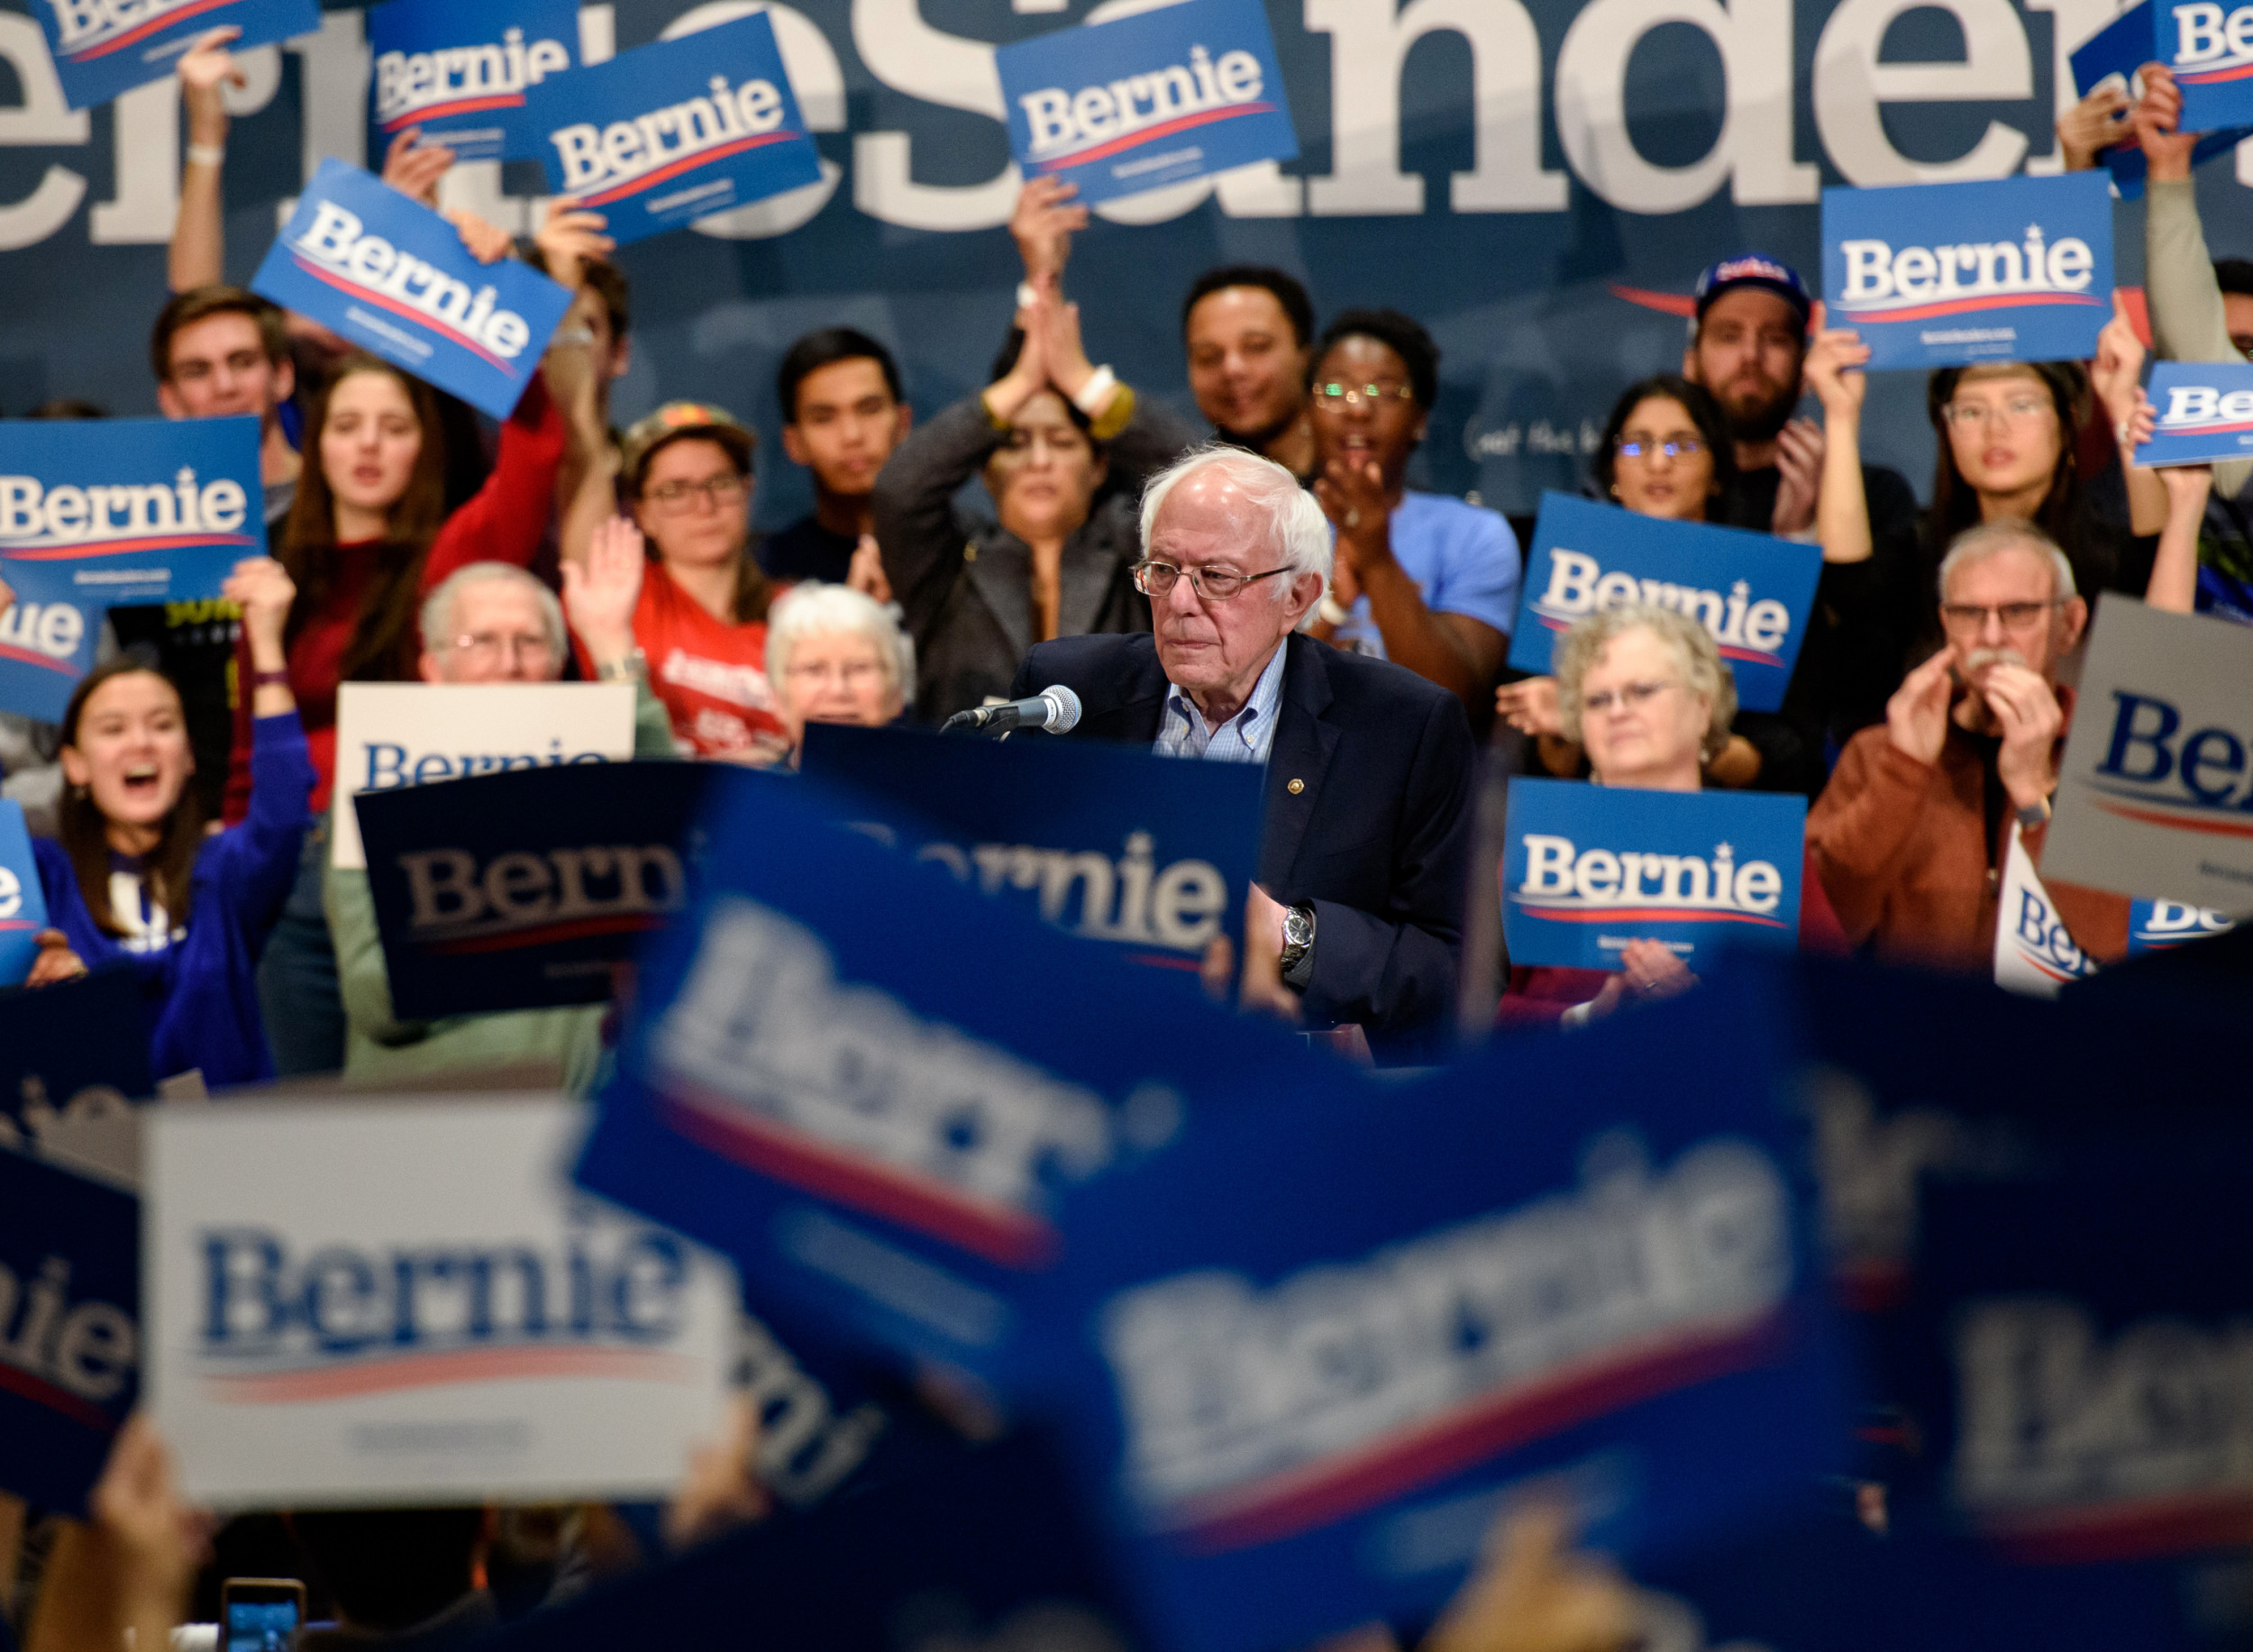 Bernie Sanders promises to legalize marijuana federally by executive order, expunge records of those convicted of pot crimes